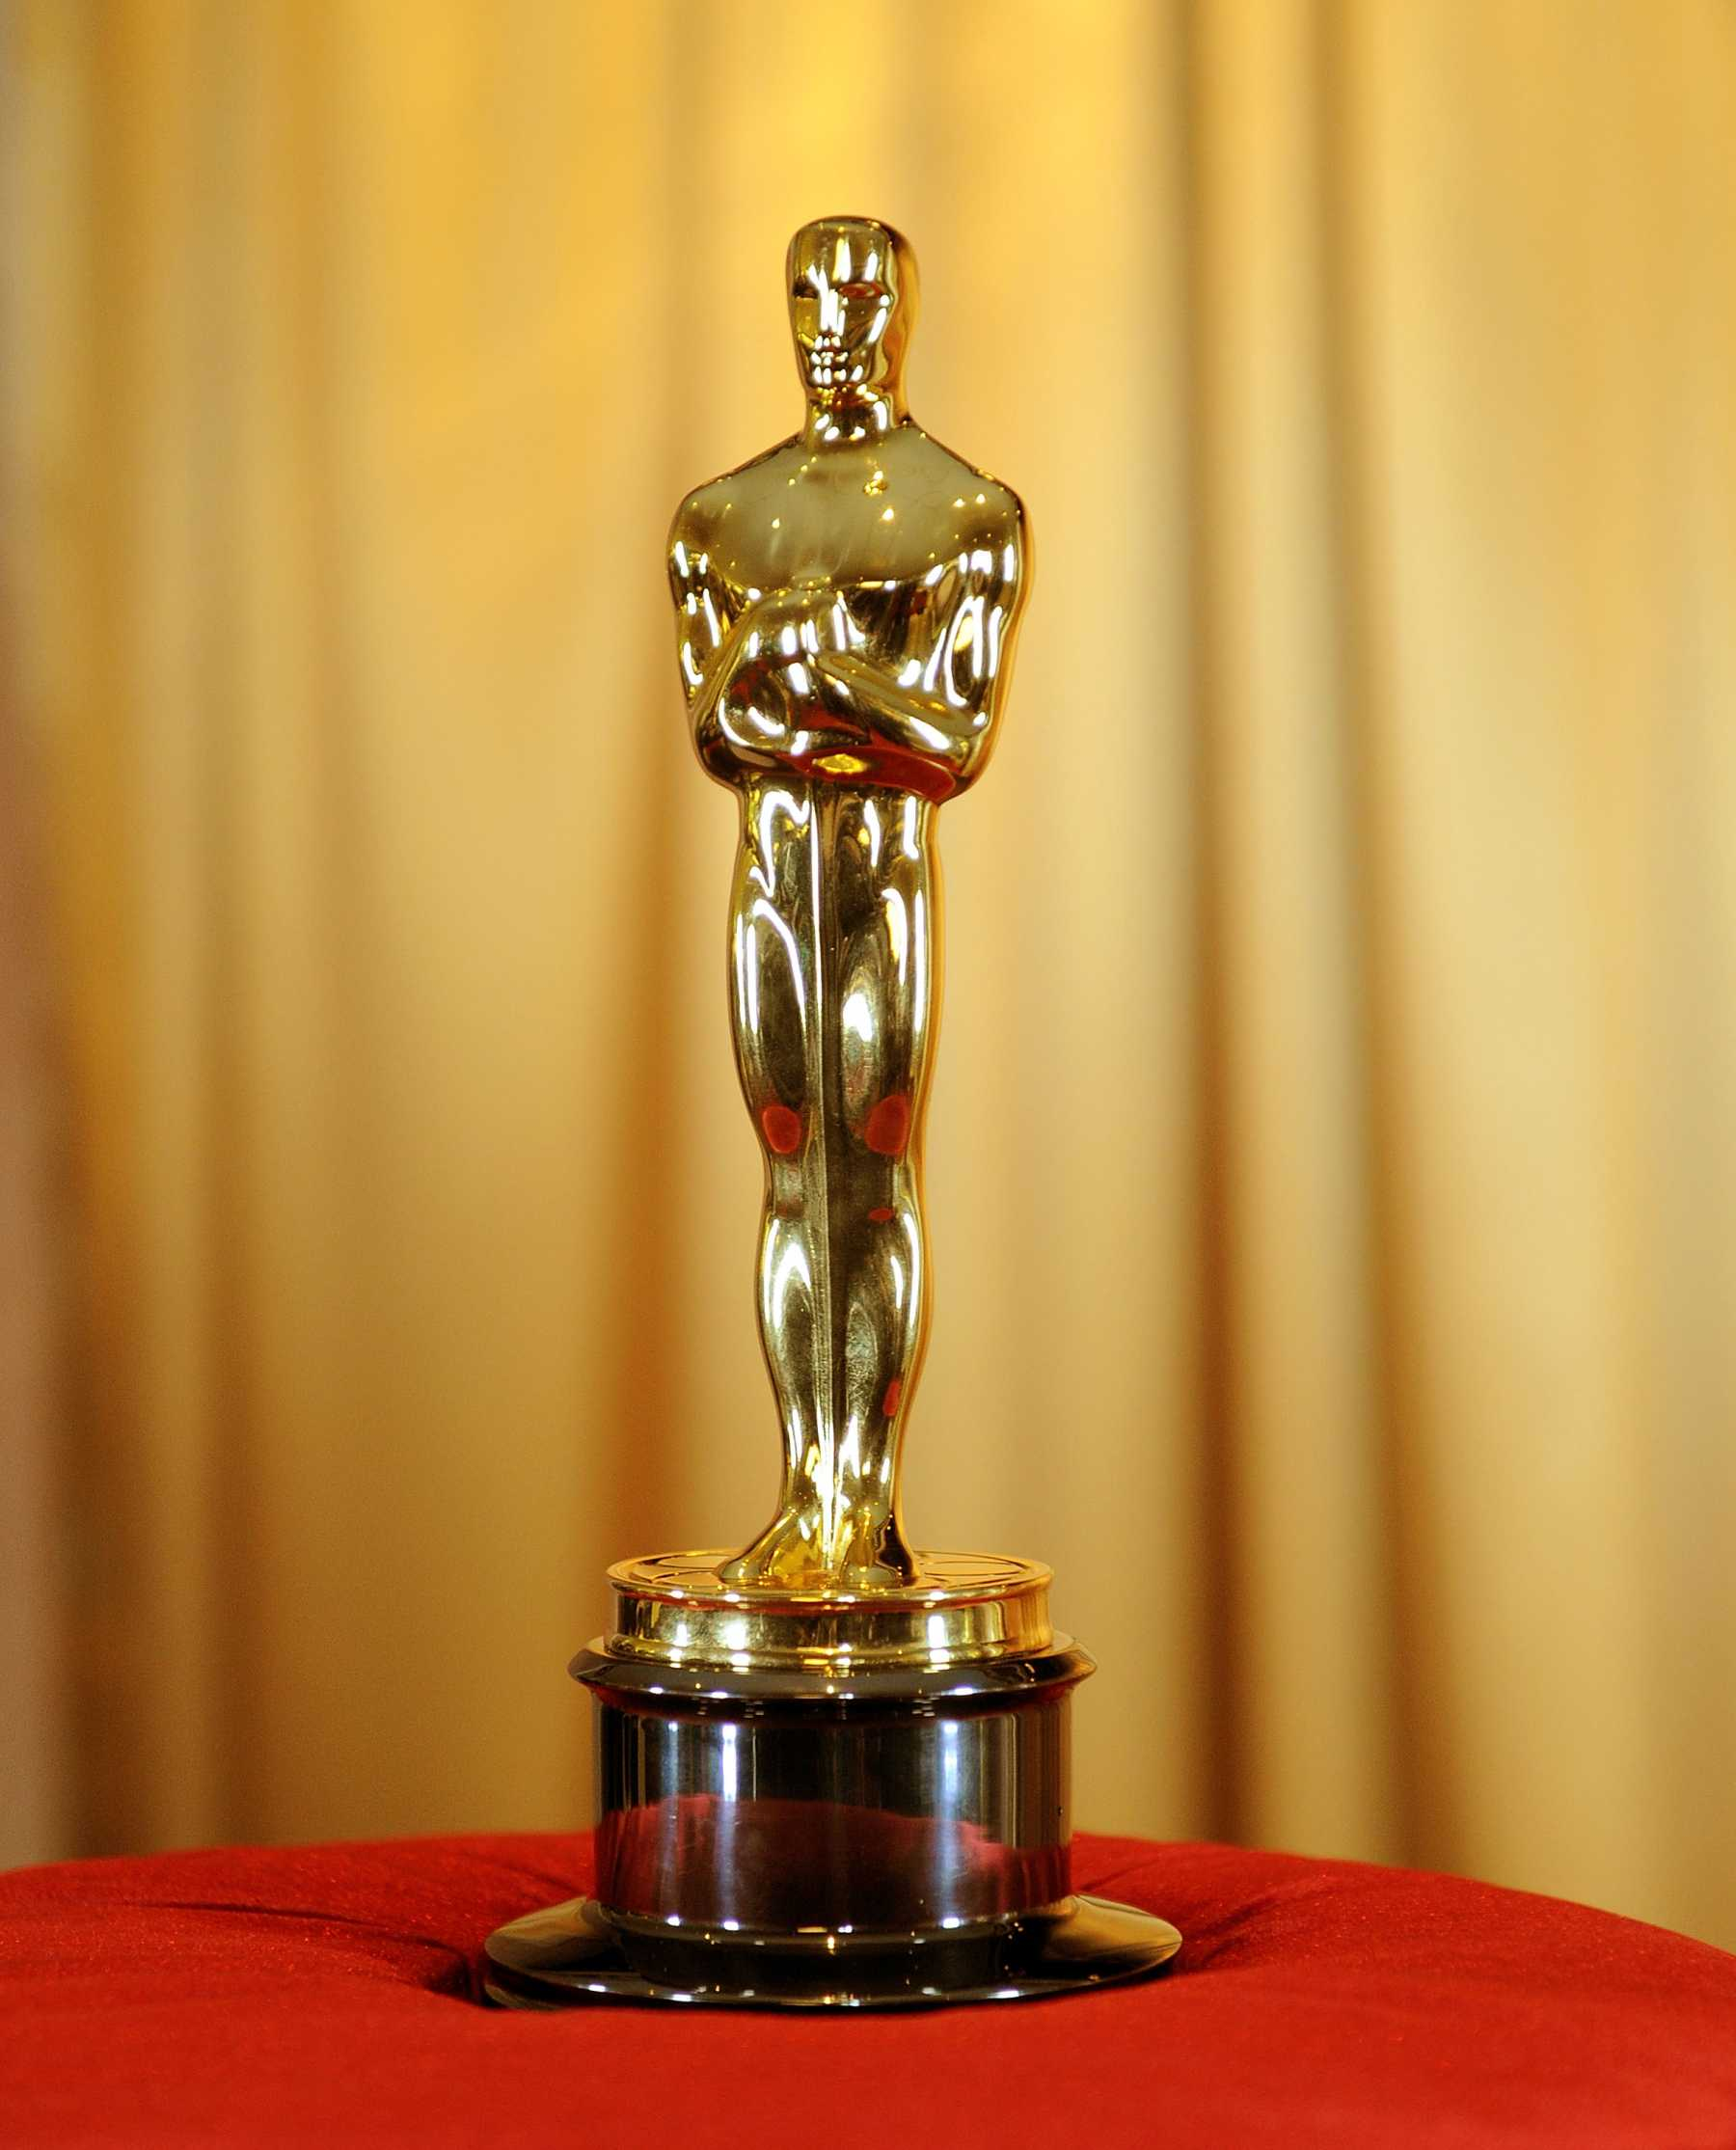 Recipients Of The 2015 Honorary Oscars Announced | oscars